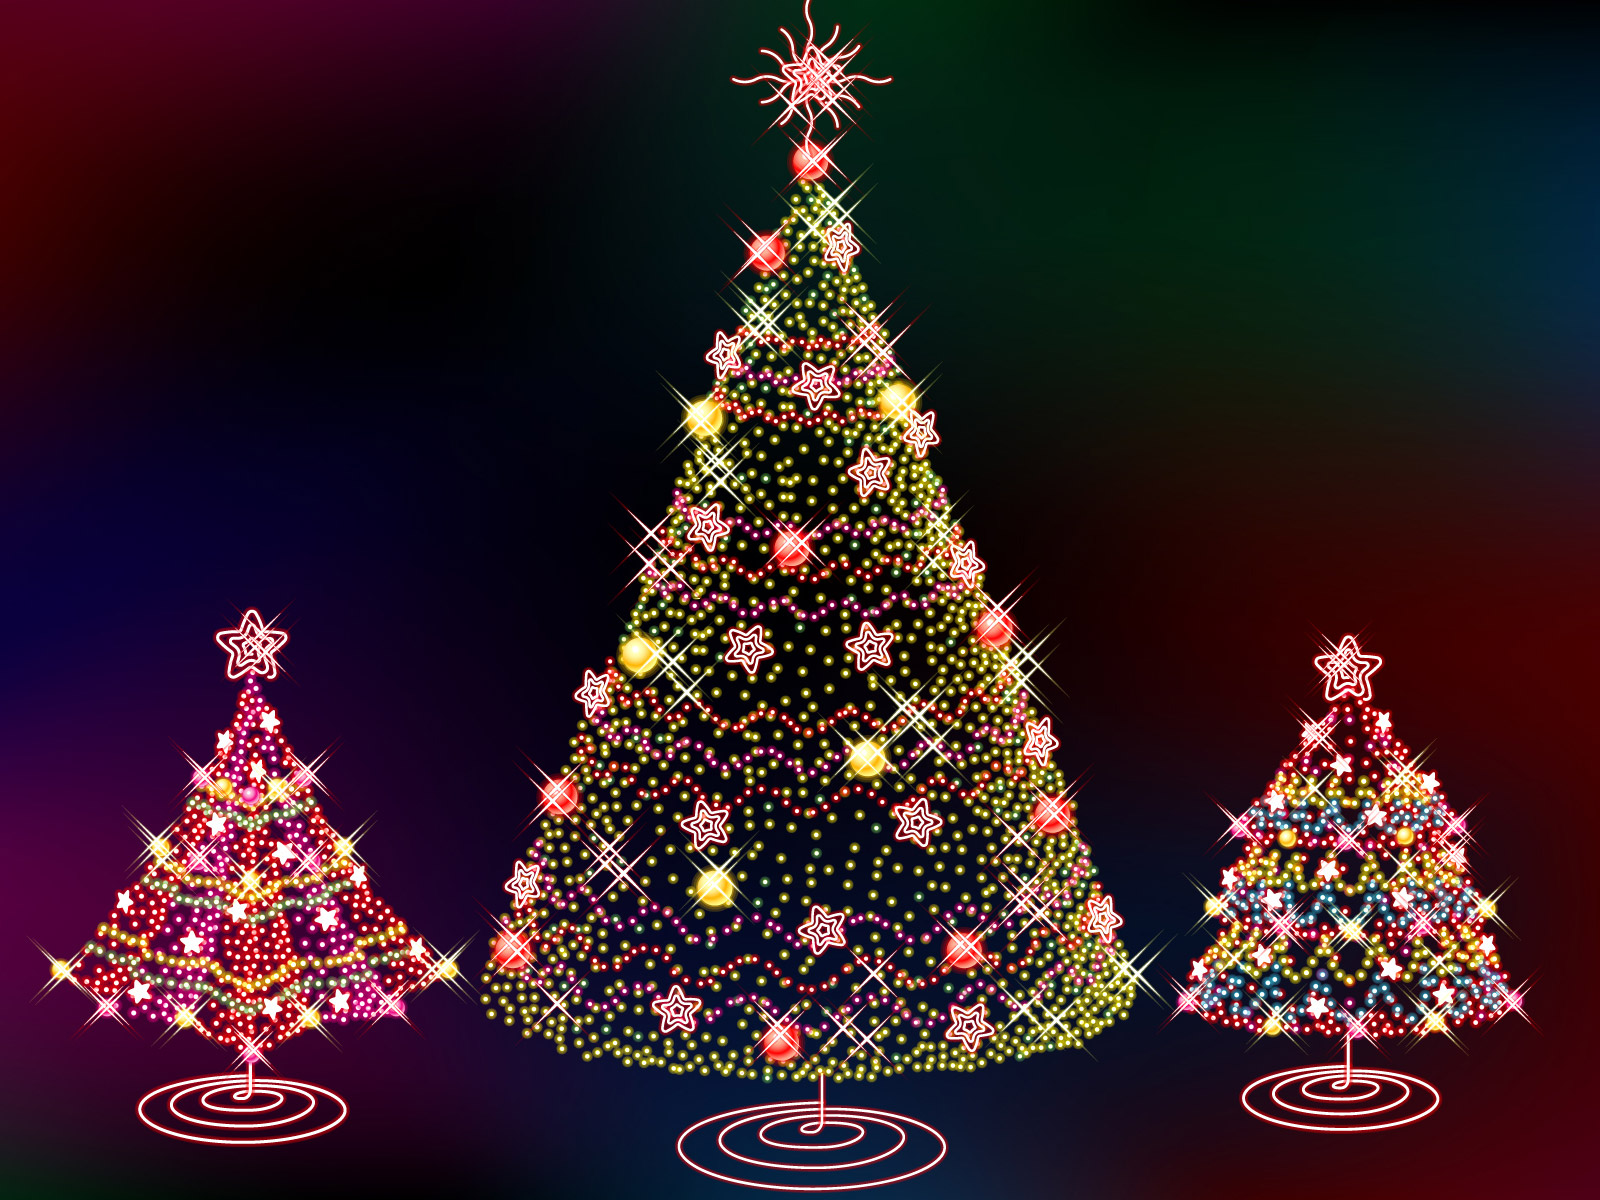 Christmas images Have A Magical Christmas Everyone HD wallpaper and background photos